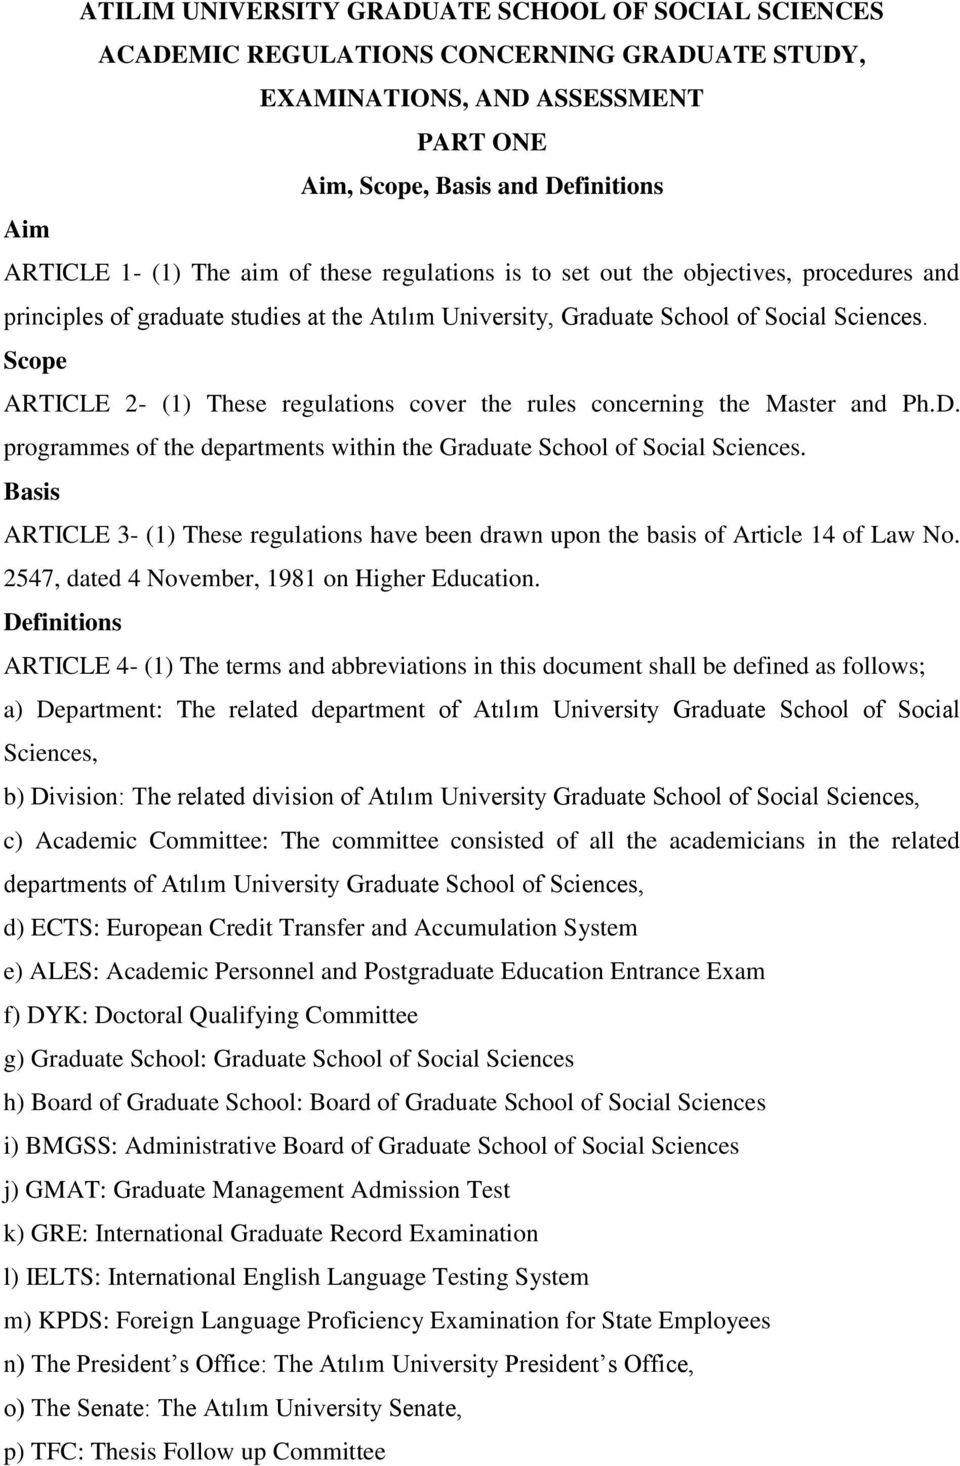 Scope ARTICLE 2- (1) These regulations cover the rules concerning the Master and Ph.D. programmes of the departments within the Graduate School of Social Sciences.